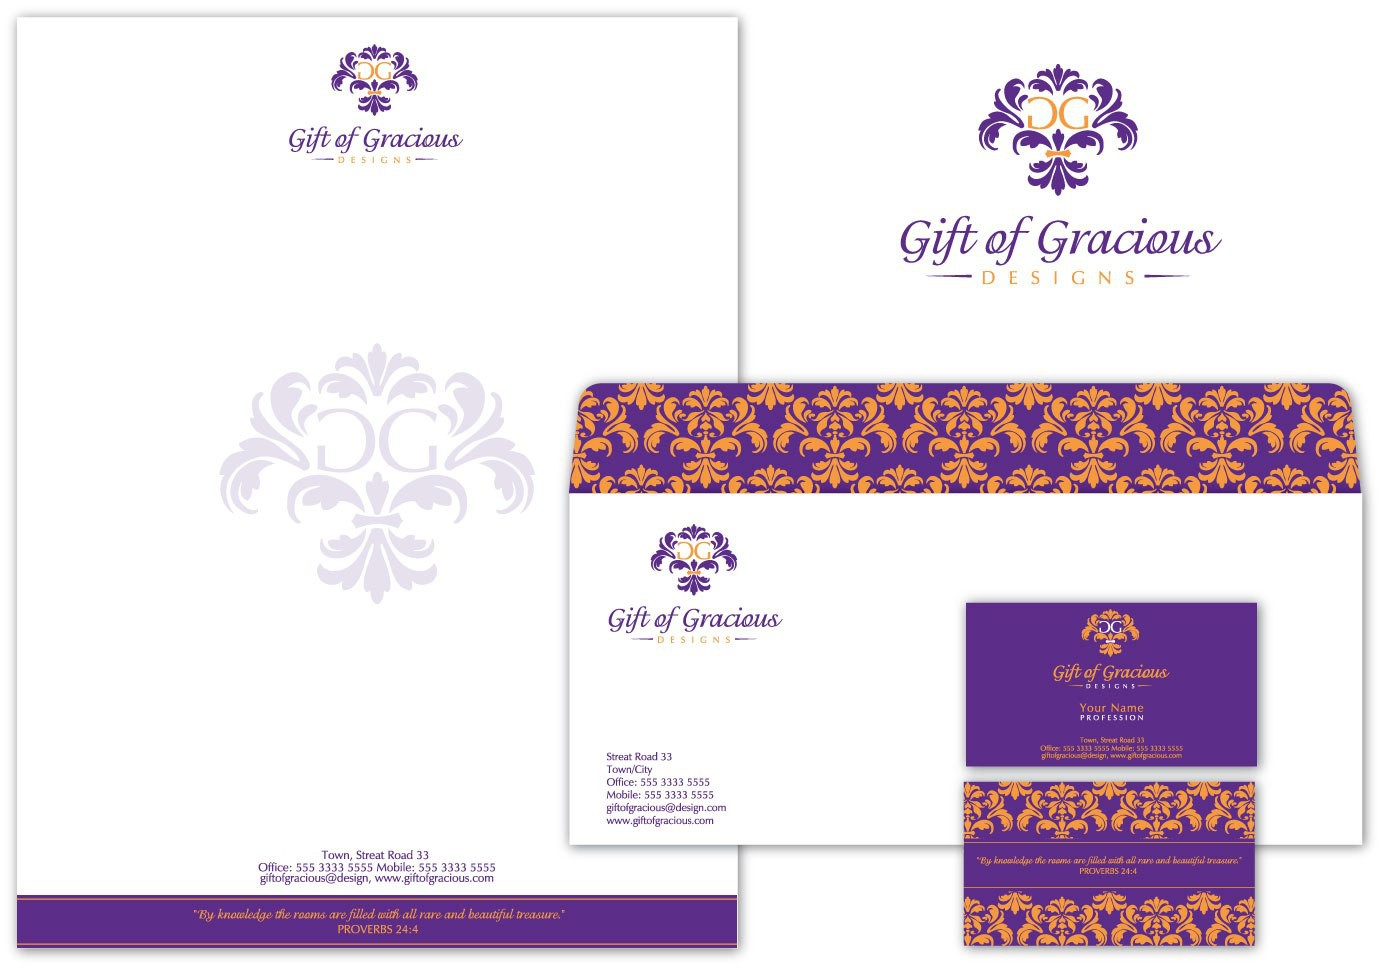 logo for Gift of Gracious Designs